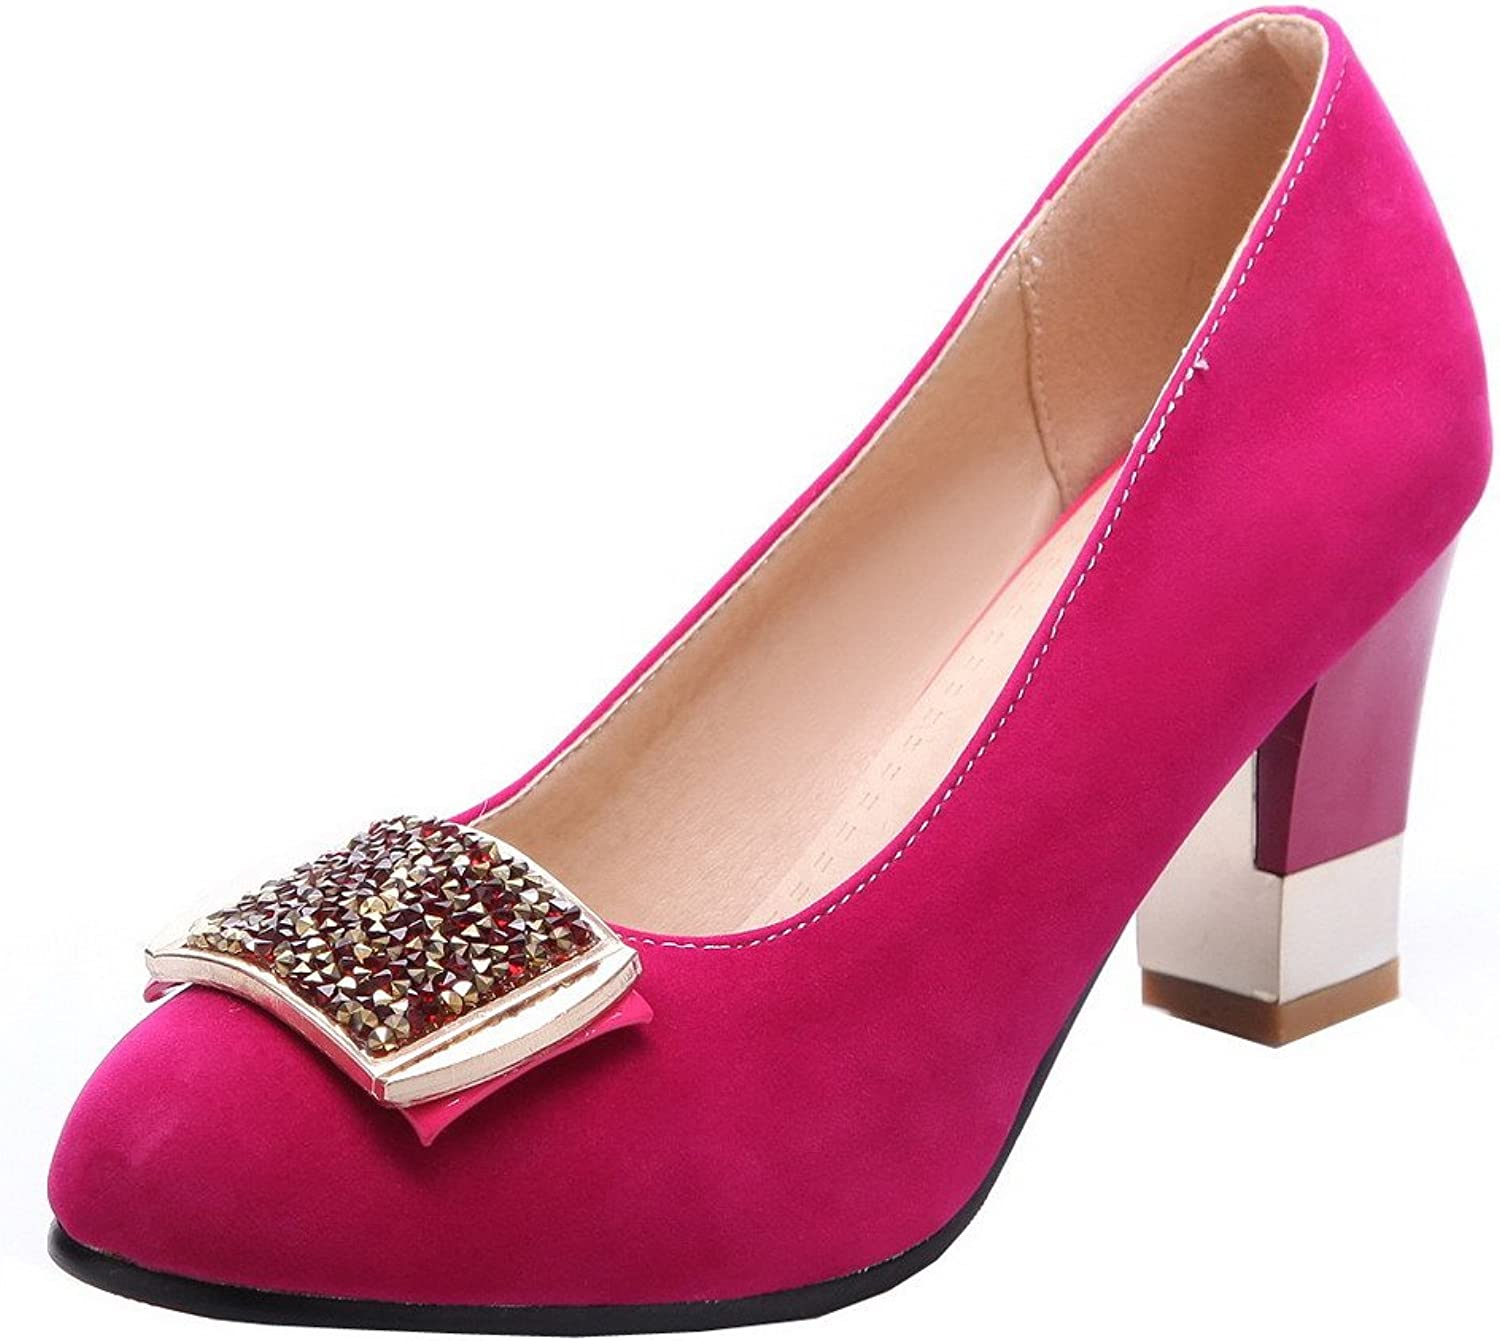 AmoonyFashion Women's Round-Toe Imitated Suede Solid High-Heels Pumps-shoes